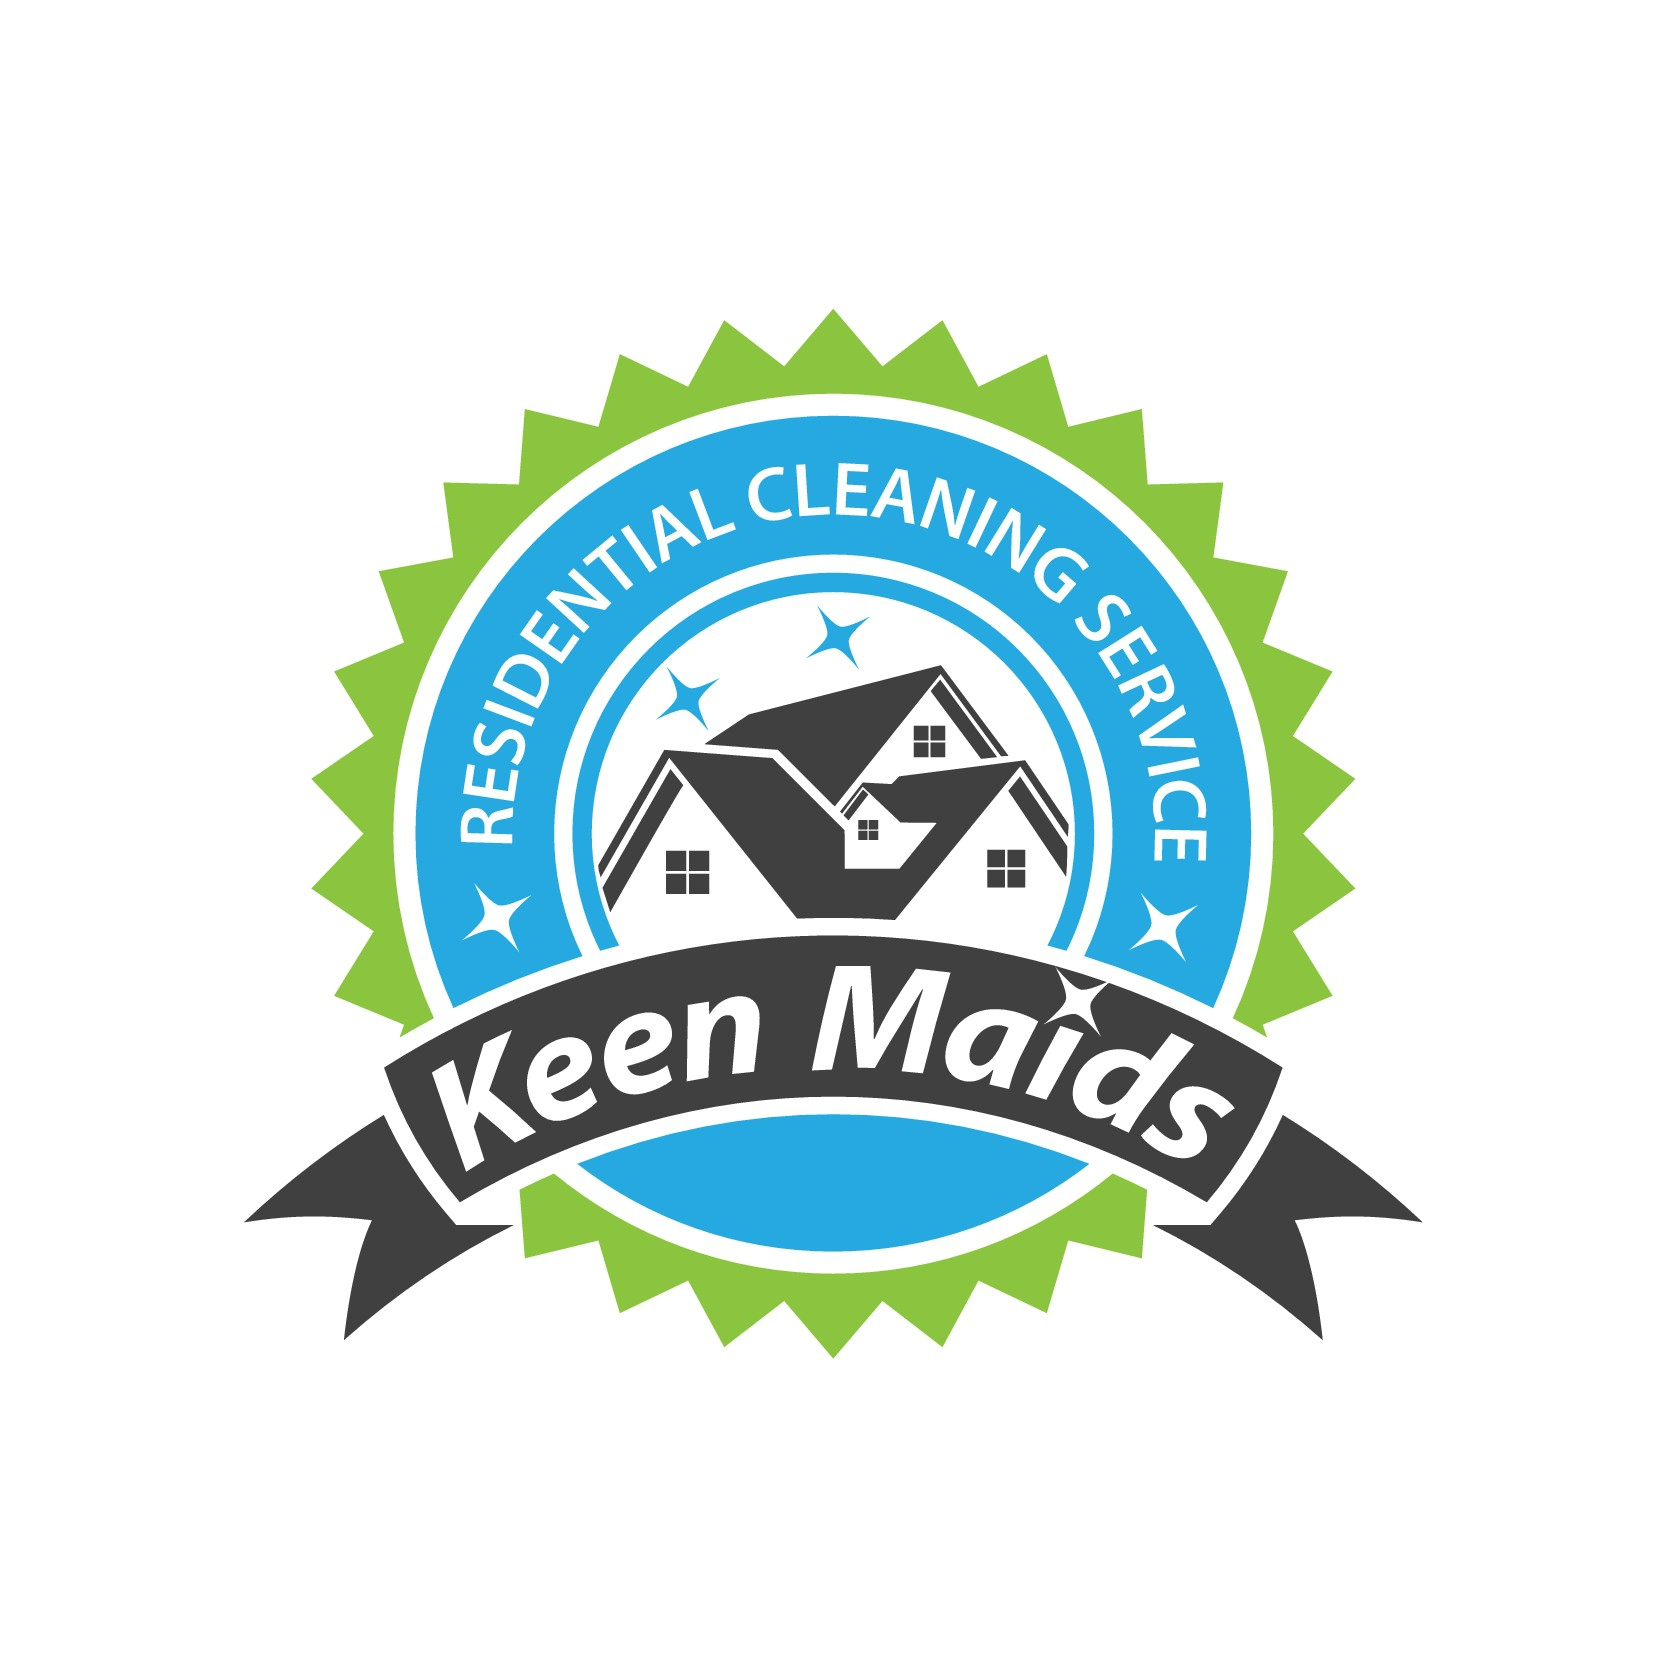 Create a friendly yet professional look for our keen maids